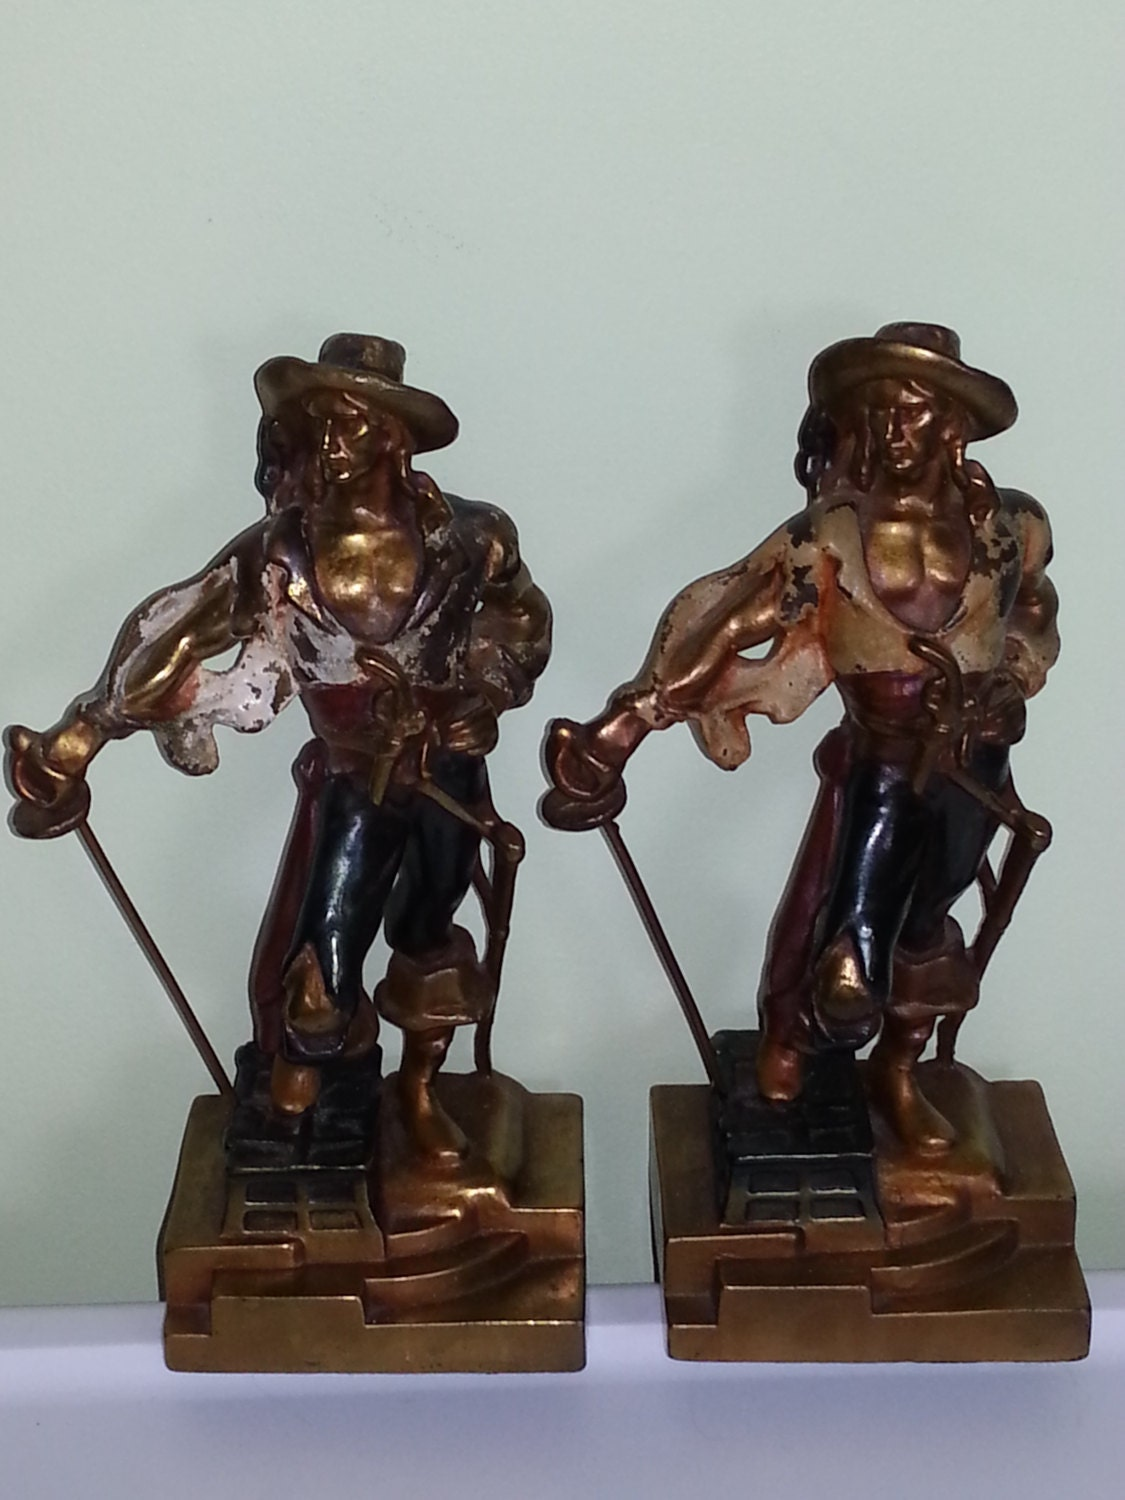 Pirates bronze clad bookends circa 1930 39 s armor by absolutelyteddy - Armor bronze bookends ...